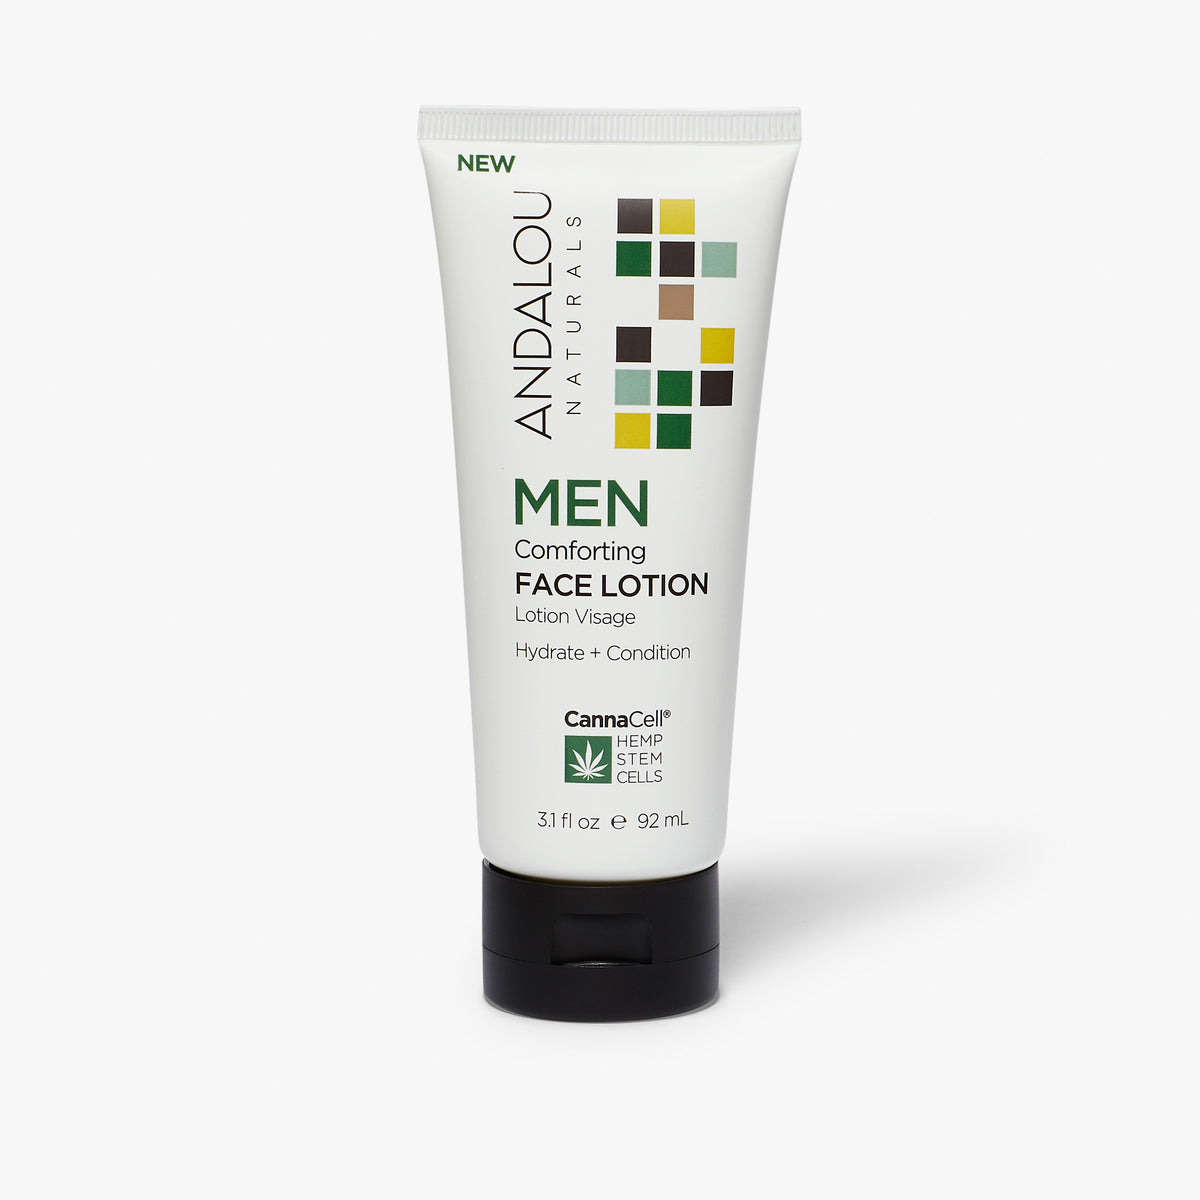 MEN Comforting Face Lotion - Andalou Naturals US